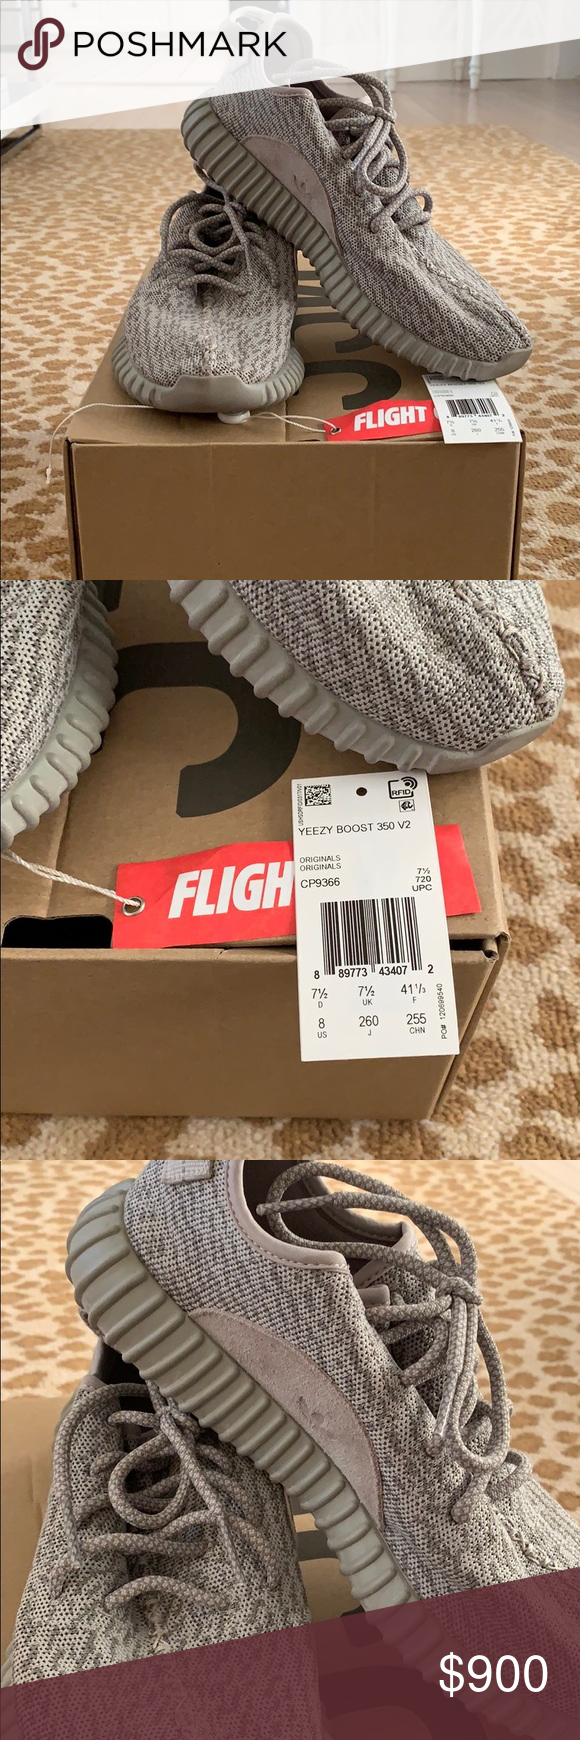 new product c0b41 73d7f Yeezy Boost 350 Beige Men's size 8. Some signs of wear ...